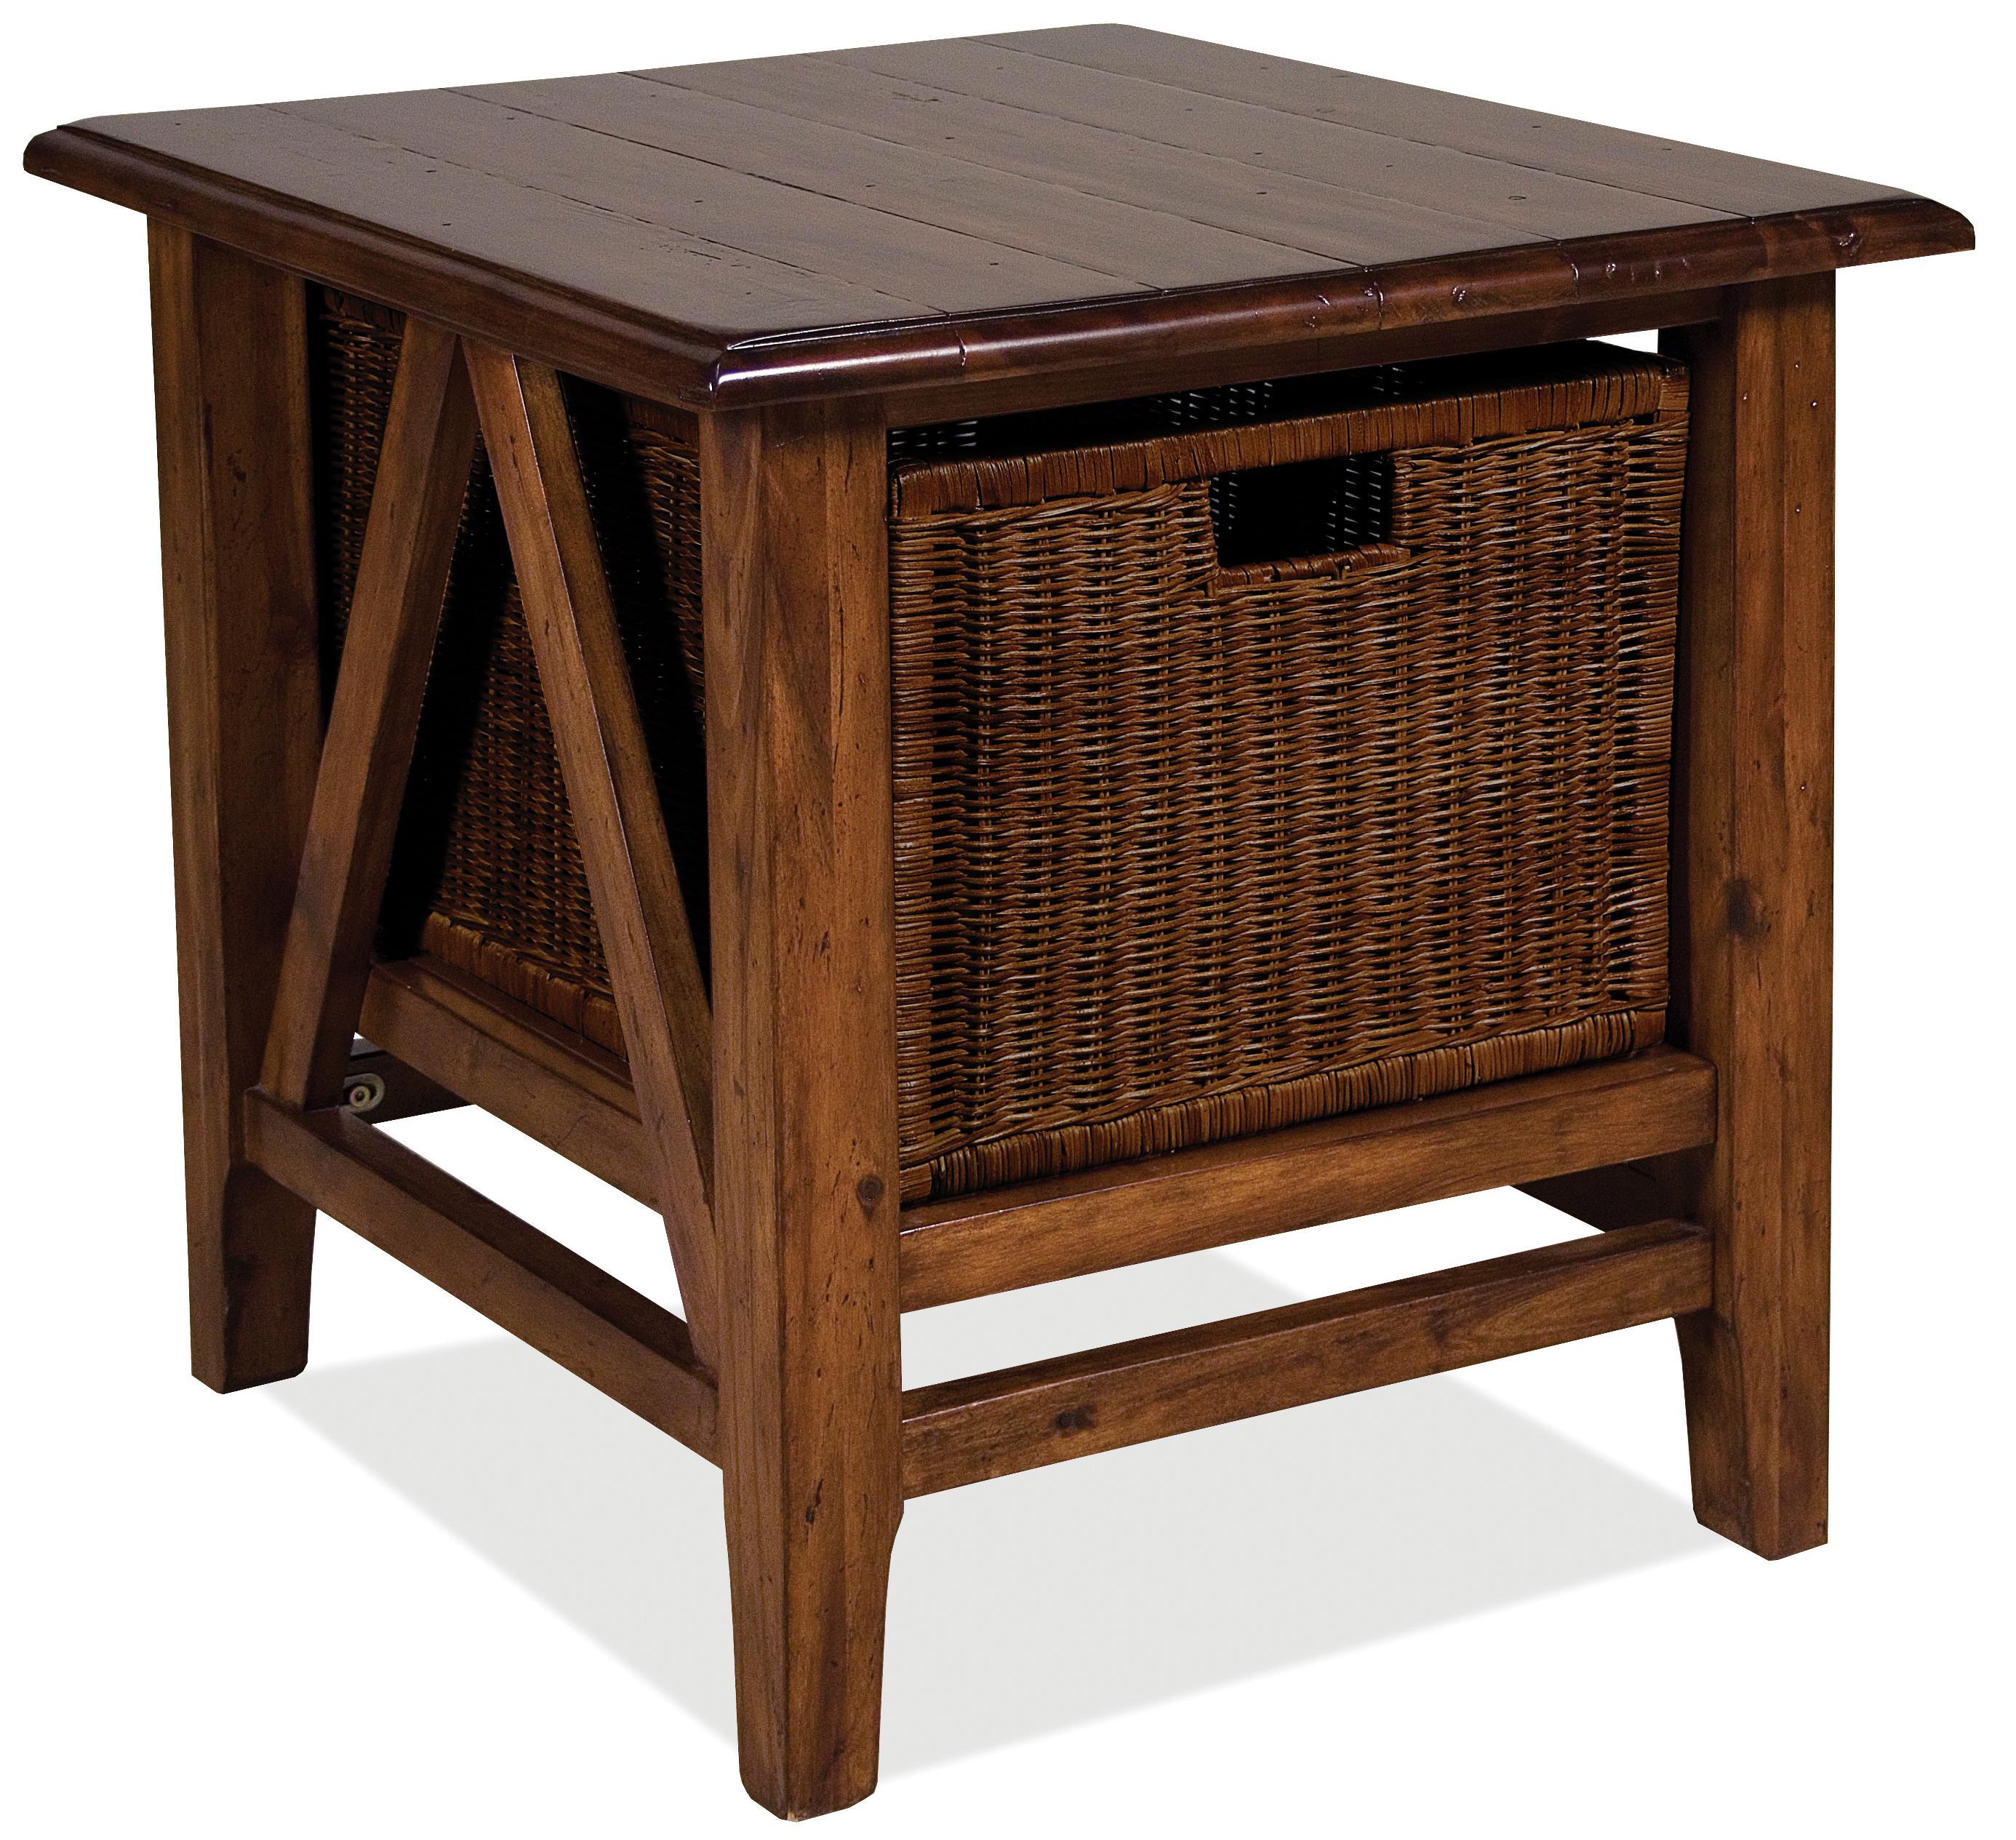 rectangular end table chrome accent with baskets zoey night walnut funky chairs half moon occasional cherry wood dining room furniture oak set inch wide nightstand wooden shelving